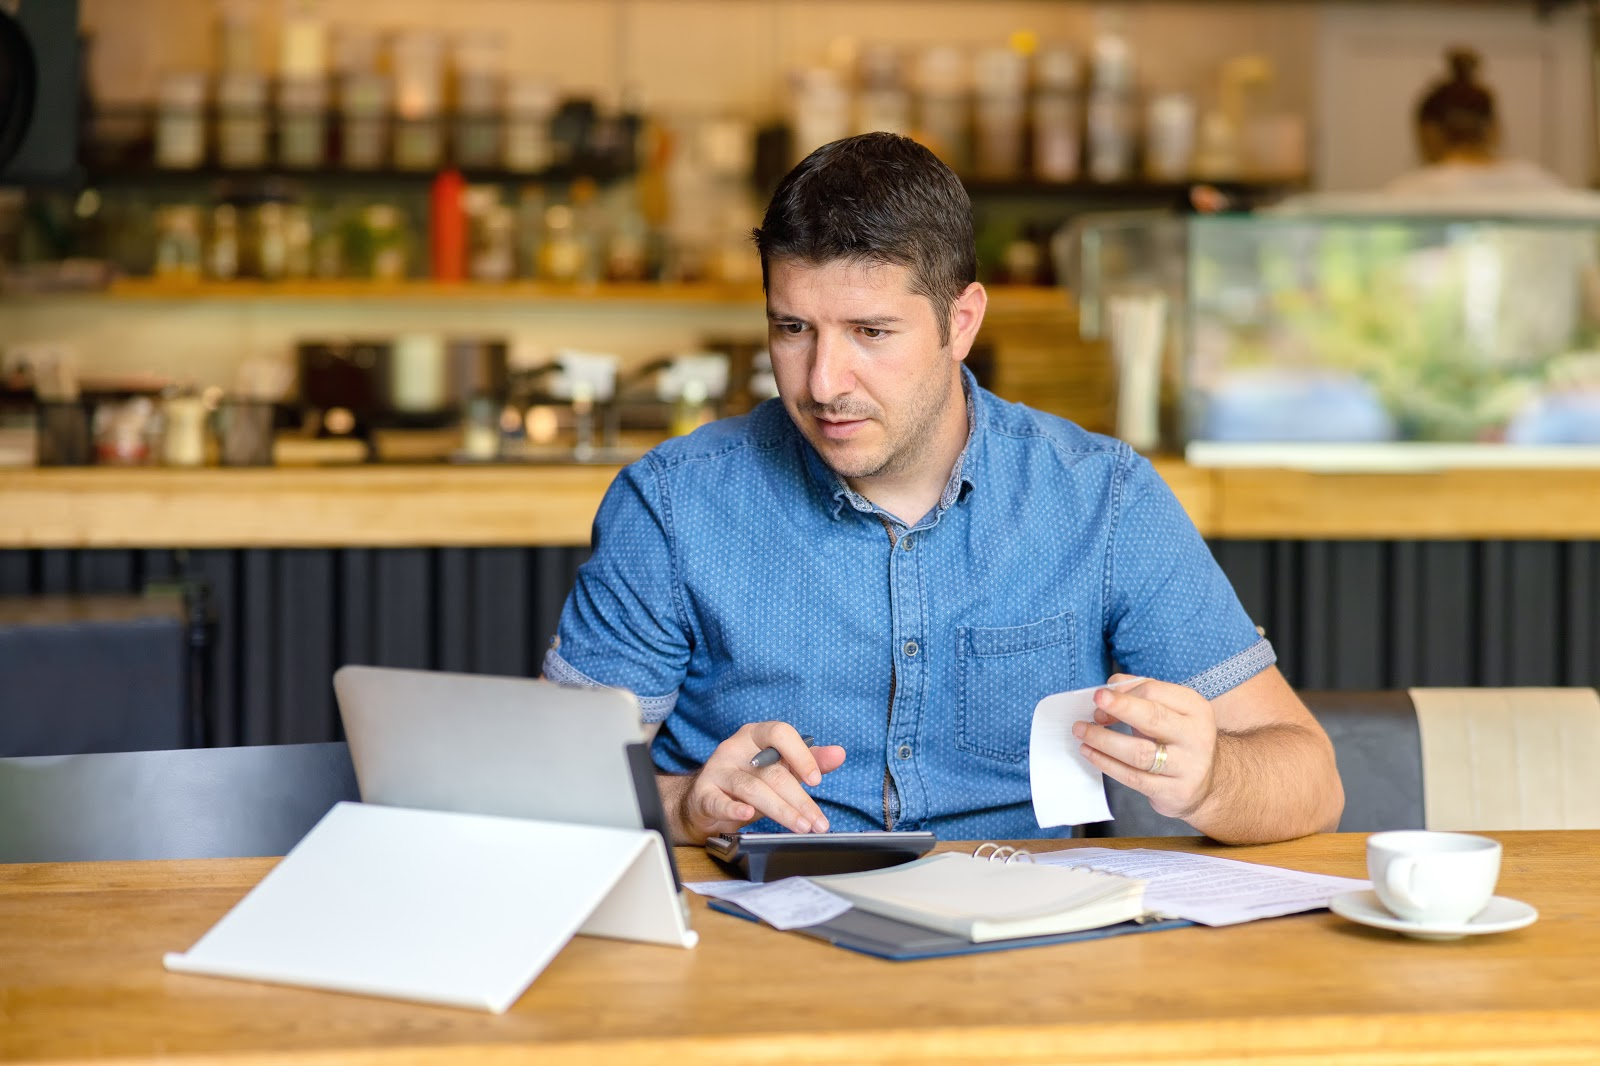 Restaurant worker performs accounting duties